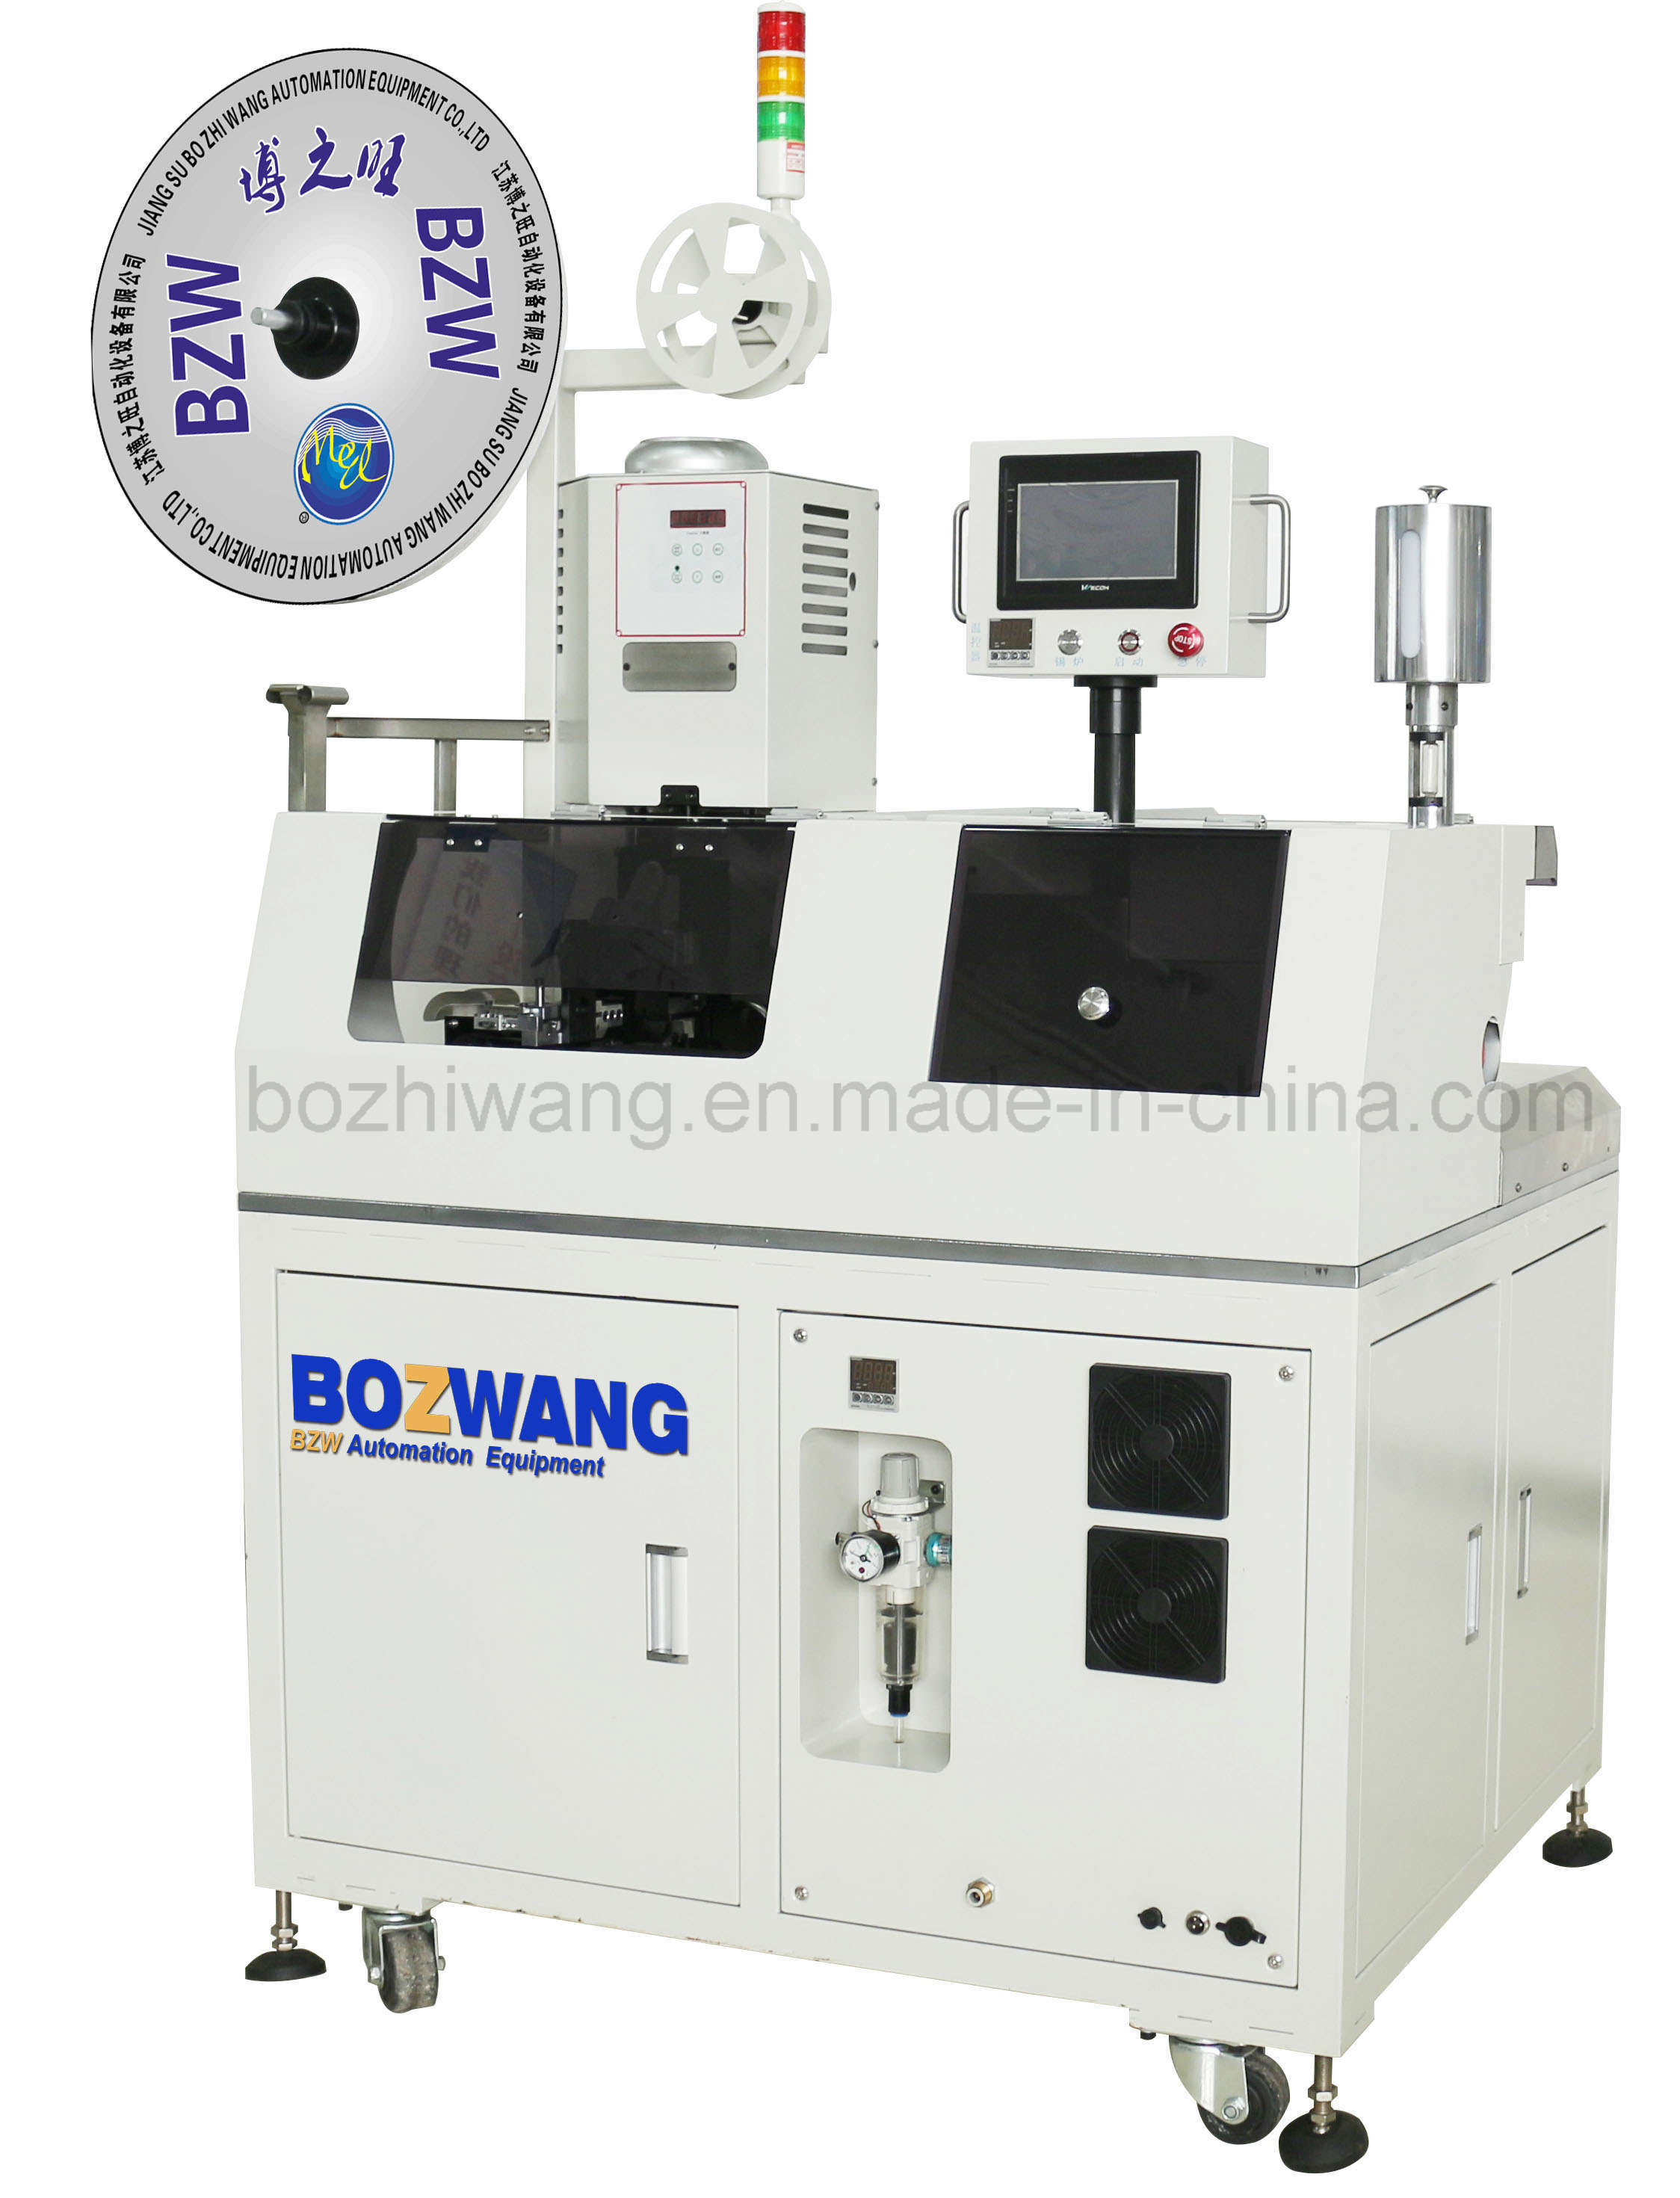 China Automatic Ribbon Cable Single End Twisting, Tinning and ...